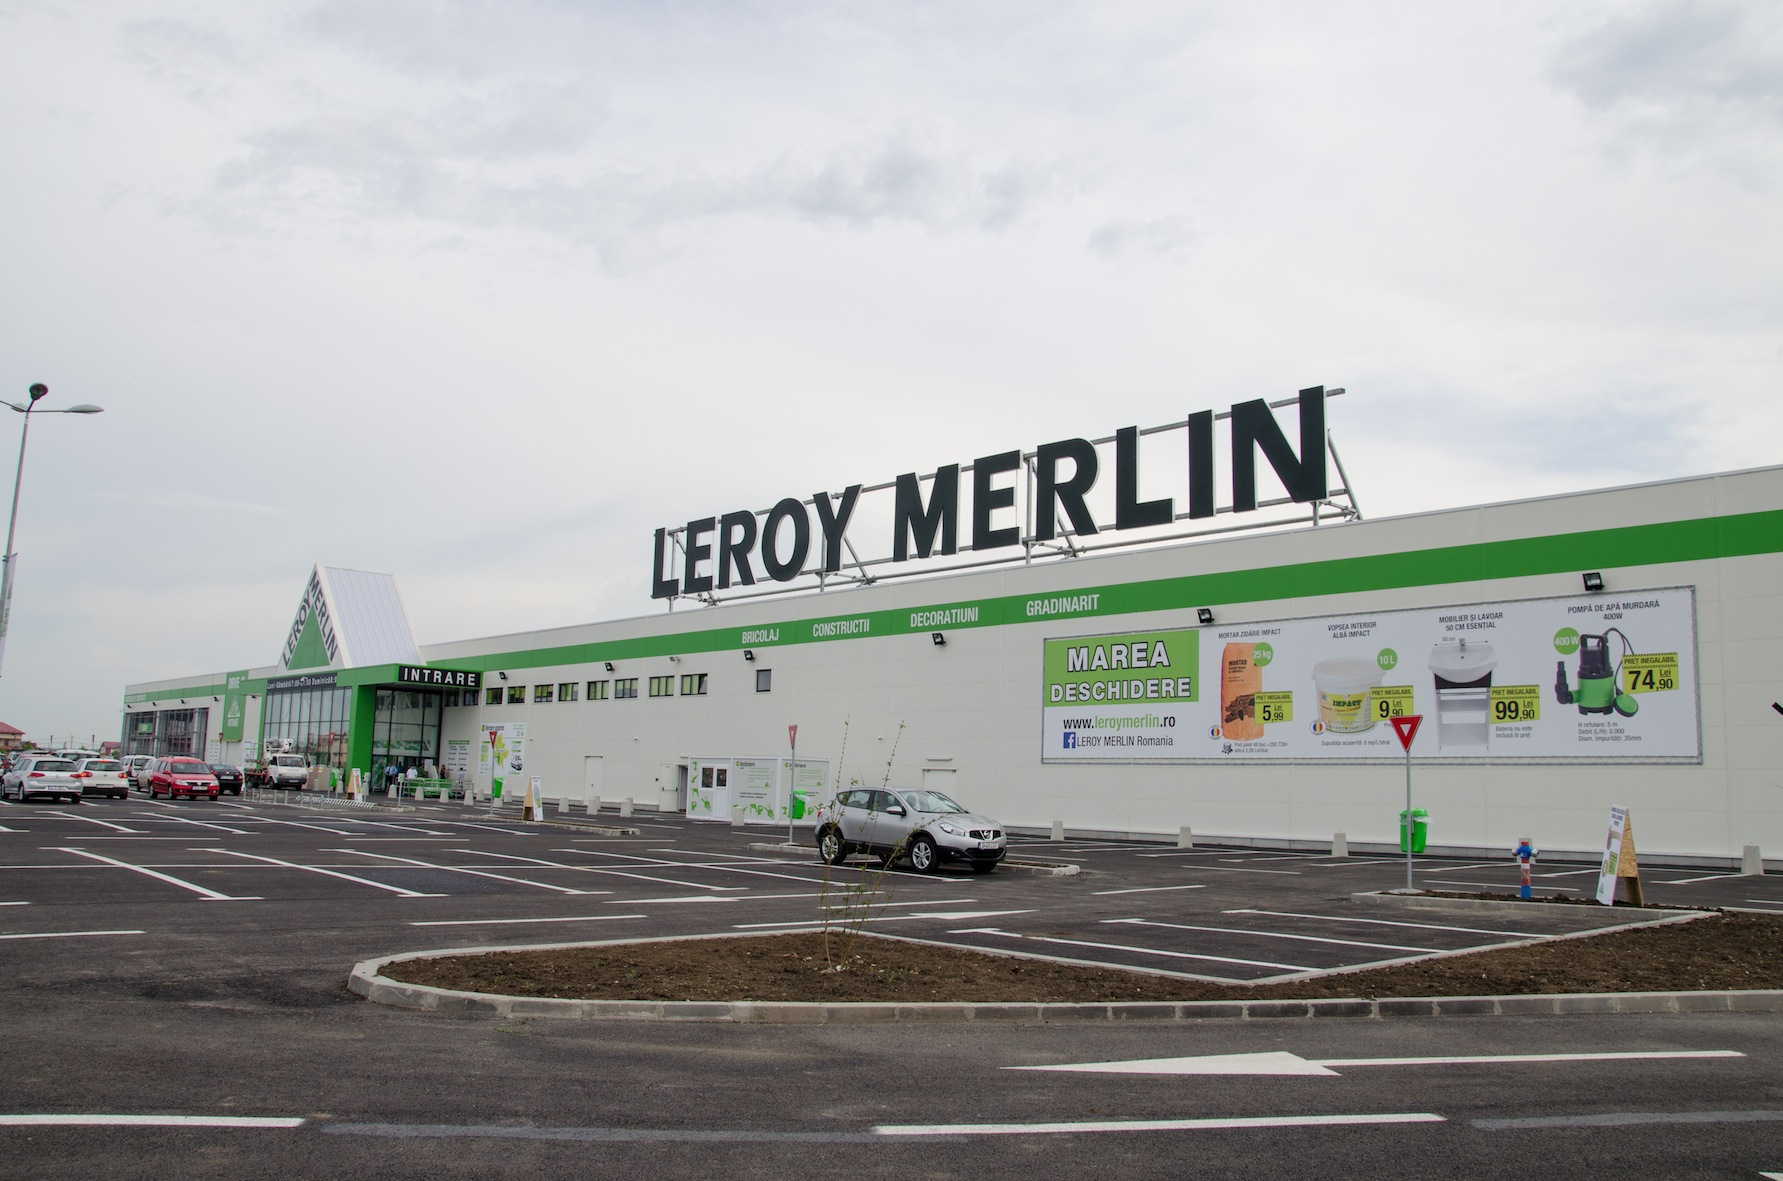 leroy merlin opens second store in cluj napoca business review. Black Bedroom Furniture Sets. Home Design Ideas